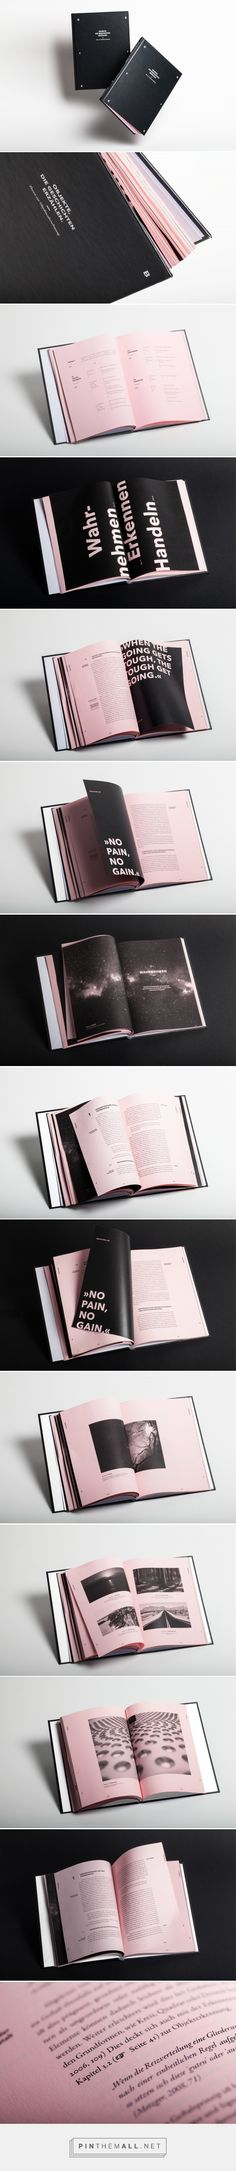 Master\'s Thesis Book Design on Behance... - a grouped images picture